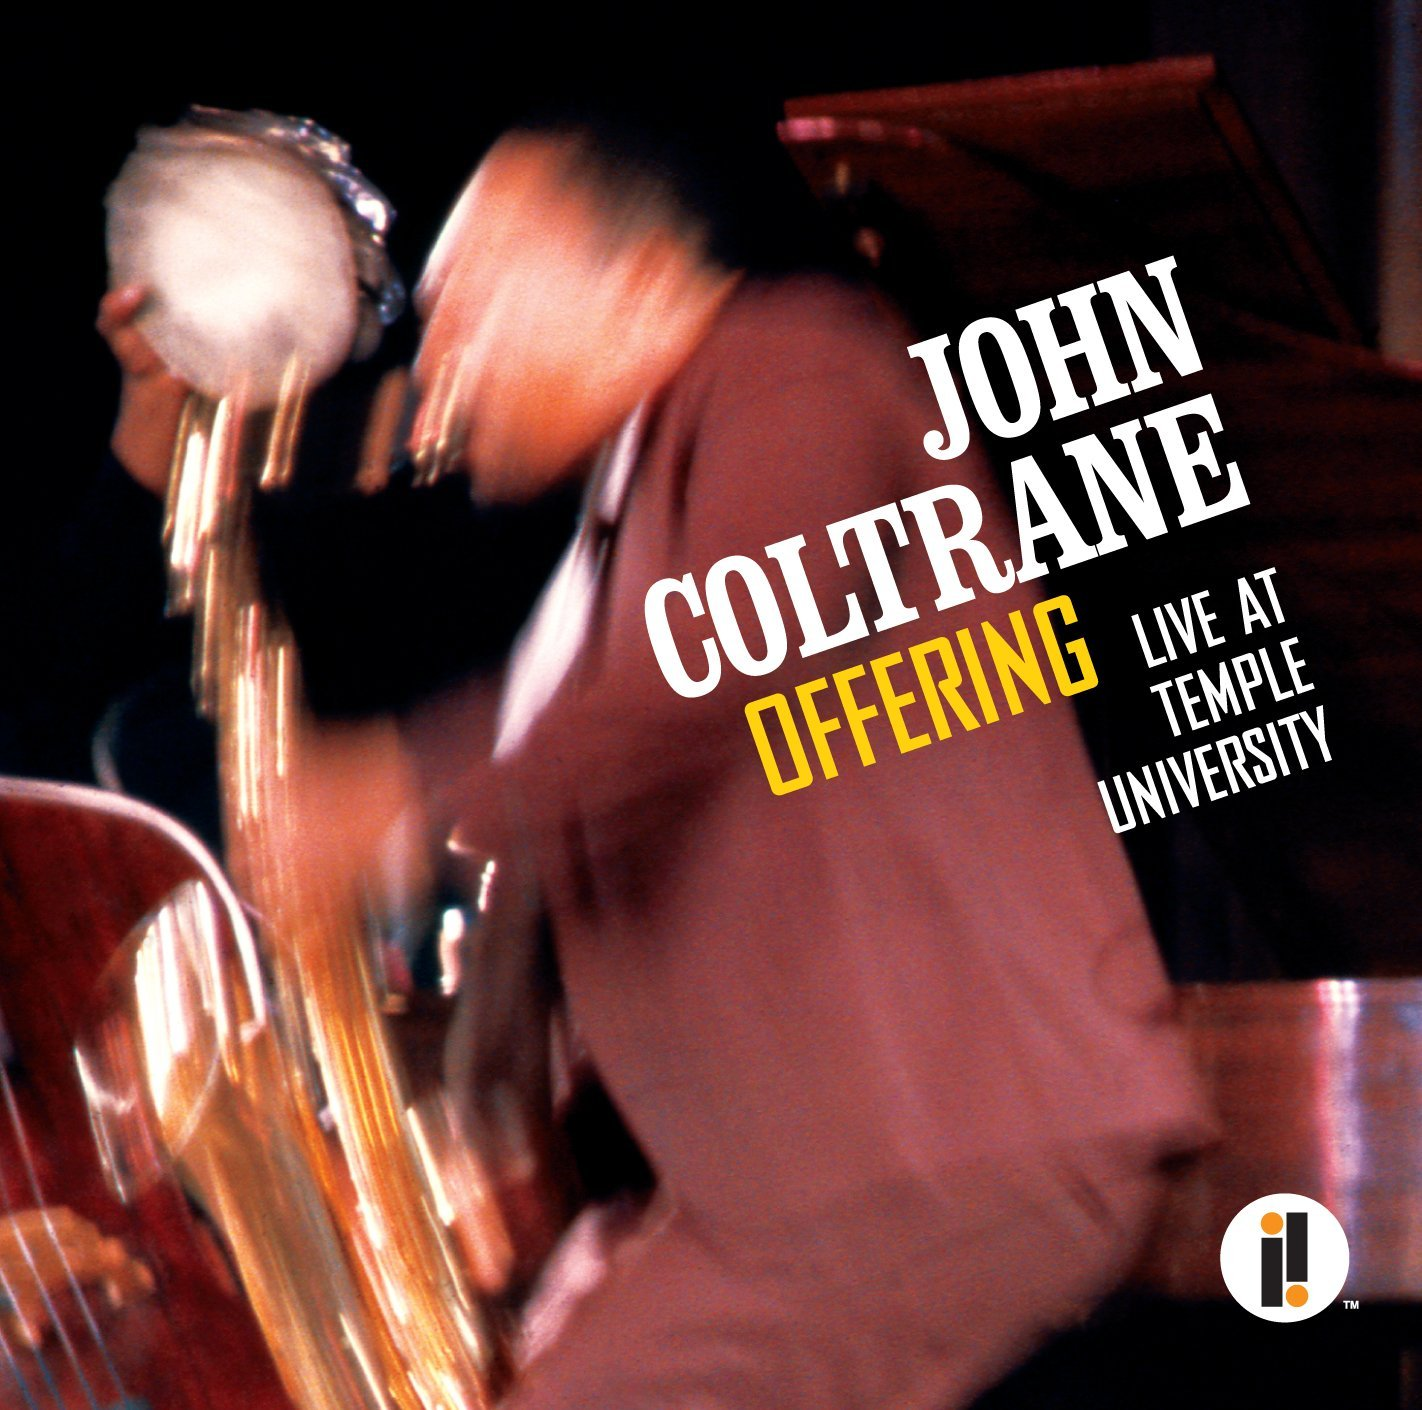 """Offering: Live at Temple University"" - John Coltrane (grabación, 1966; edición, 2014)"